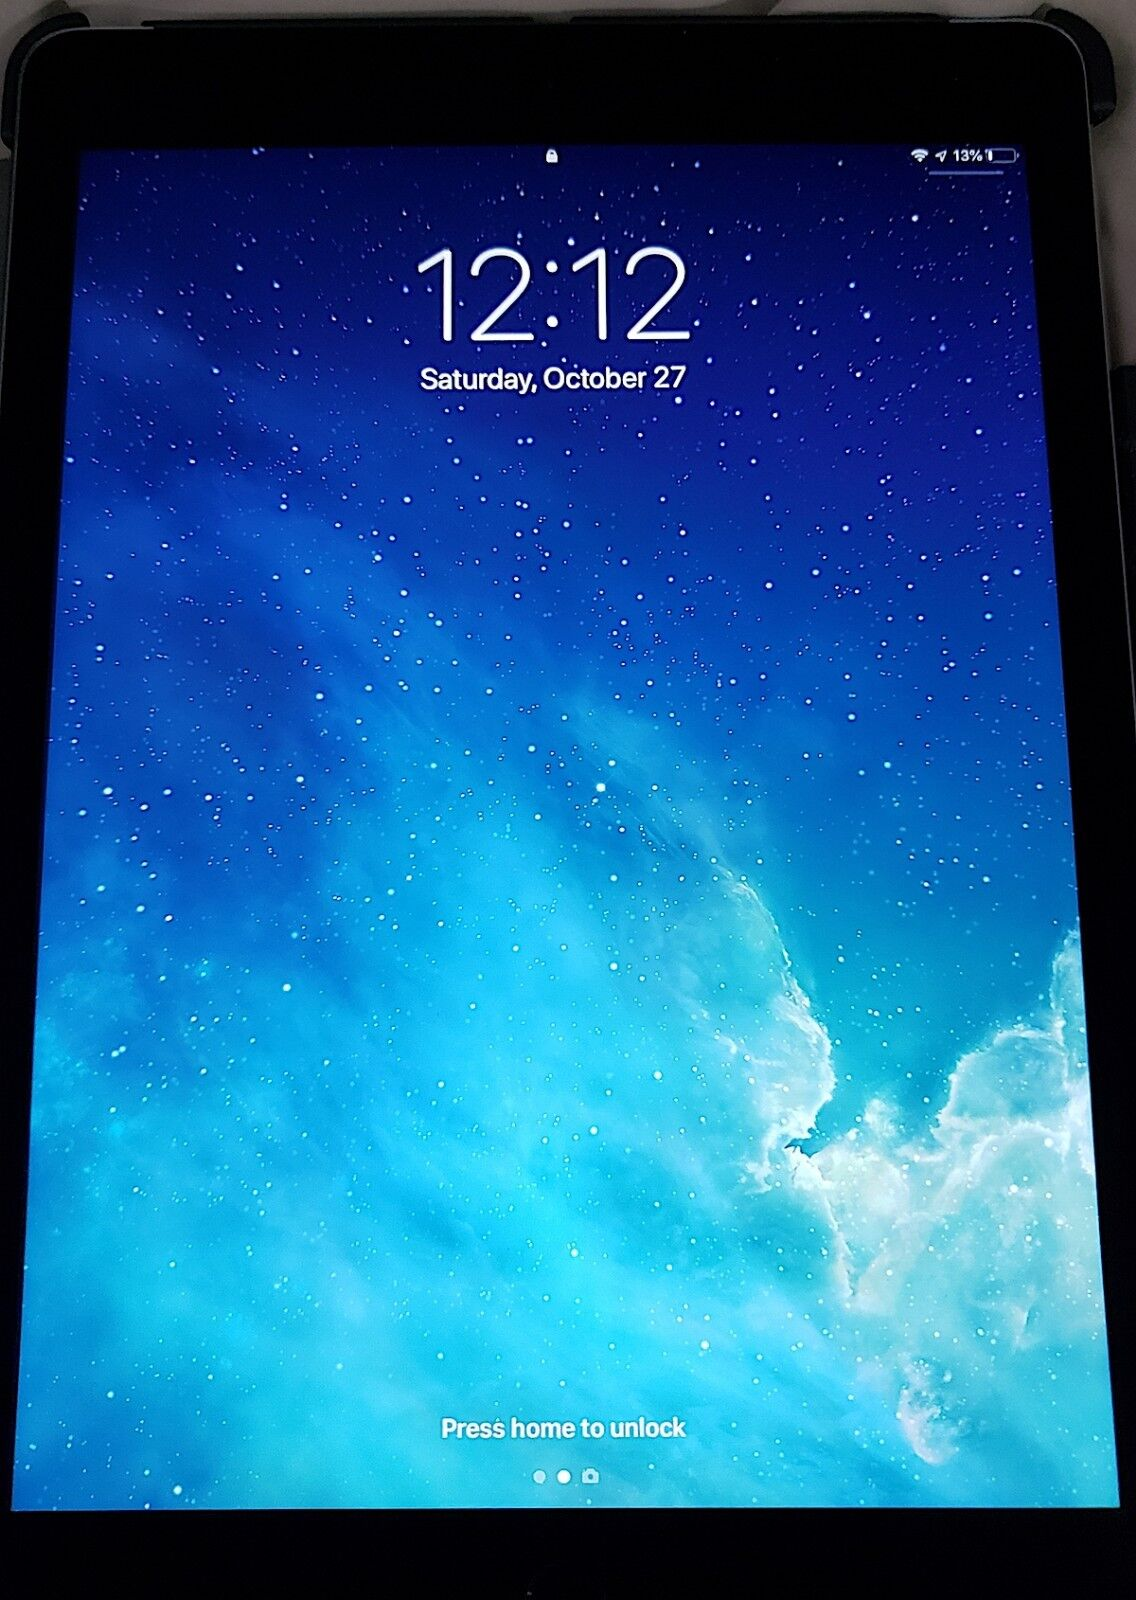 Apple iPad Air 2 16GB, Wi-Fi + Cellular (UNLOCKED), 9.7in - Space Gray A1567 OBO